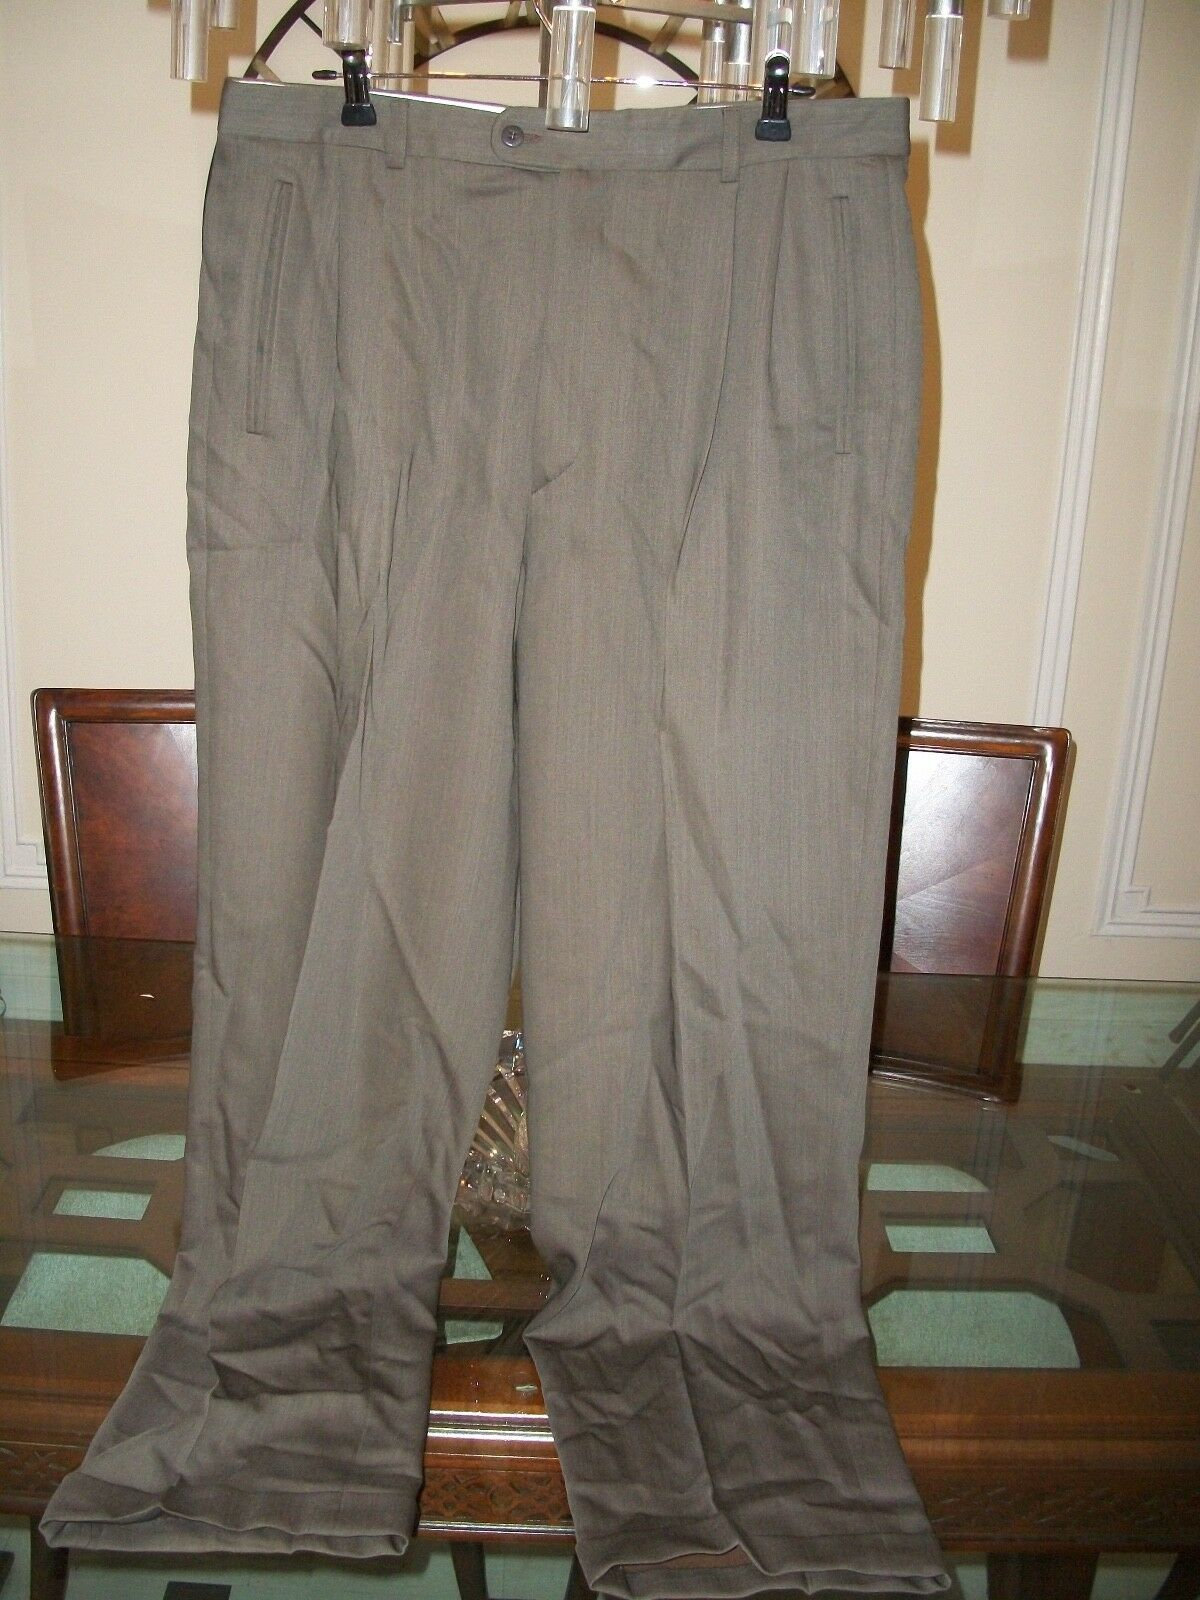 Used ZANELLA PLATINUM brown  Duncan  pleated dress pants size 36 x 33